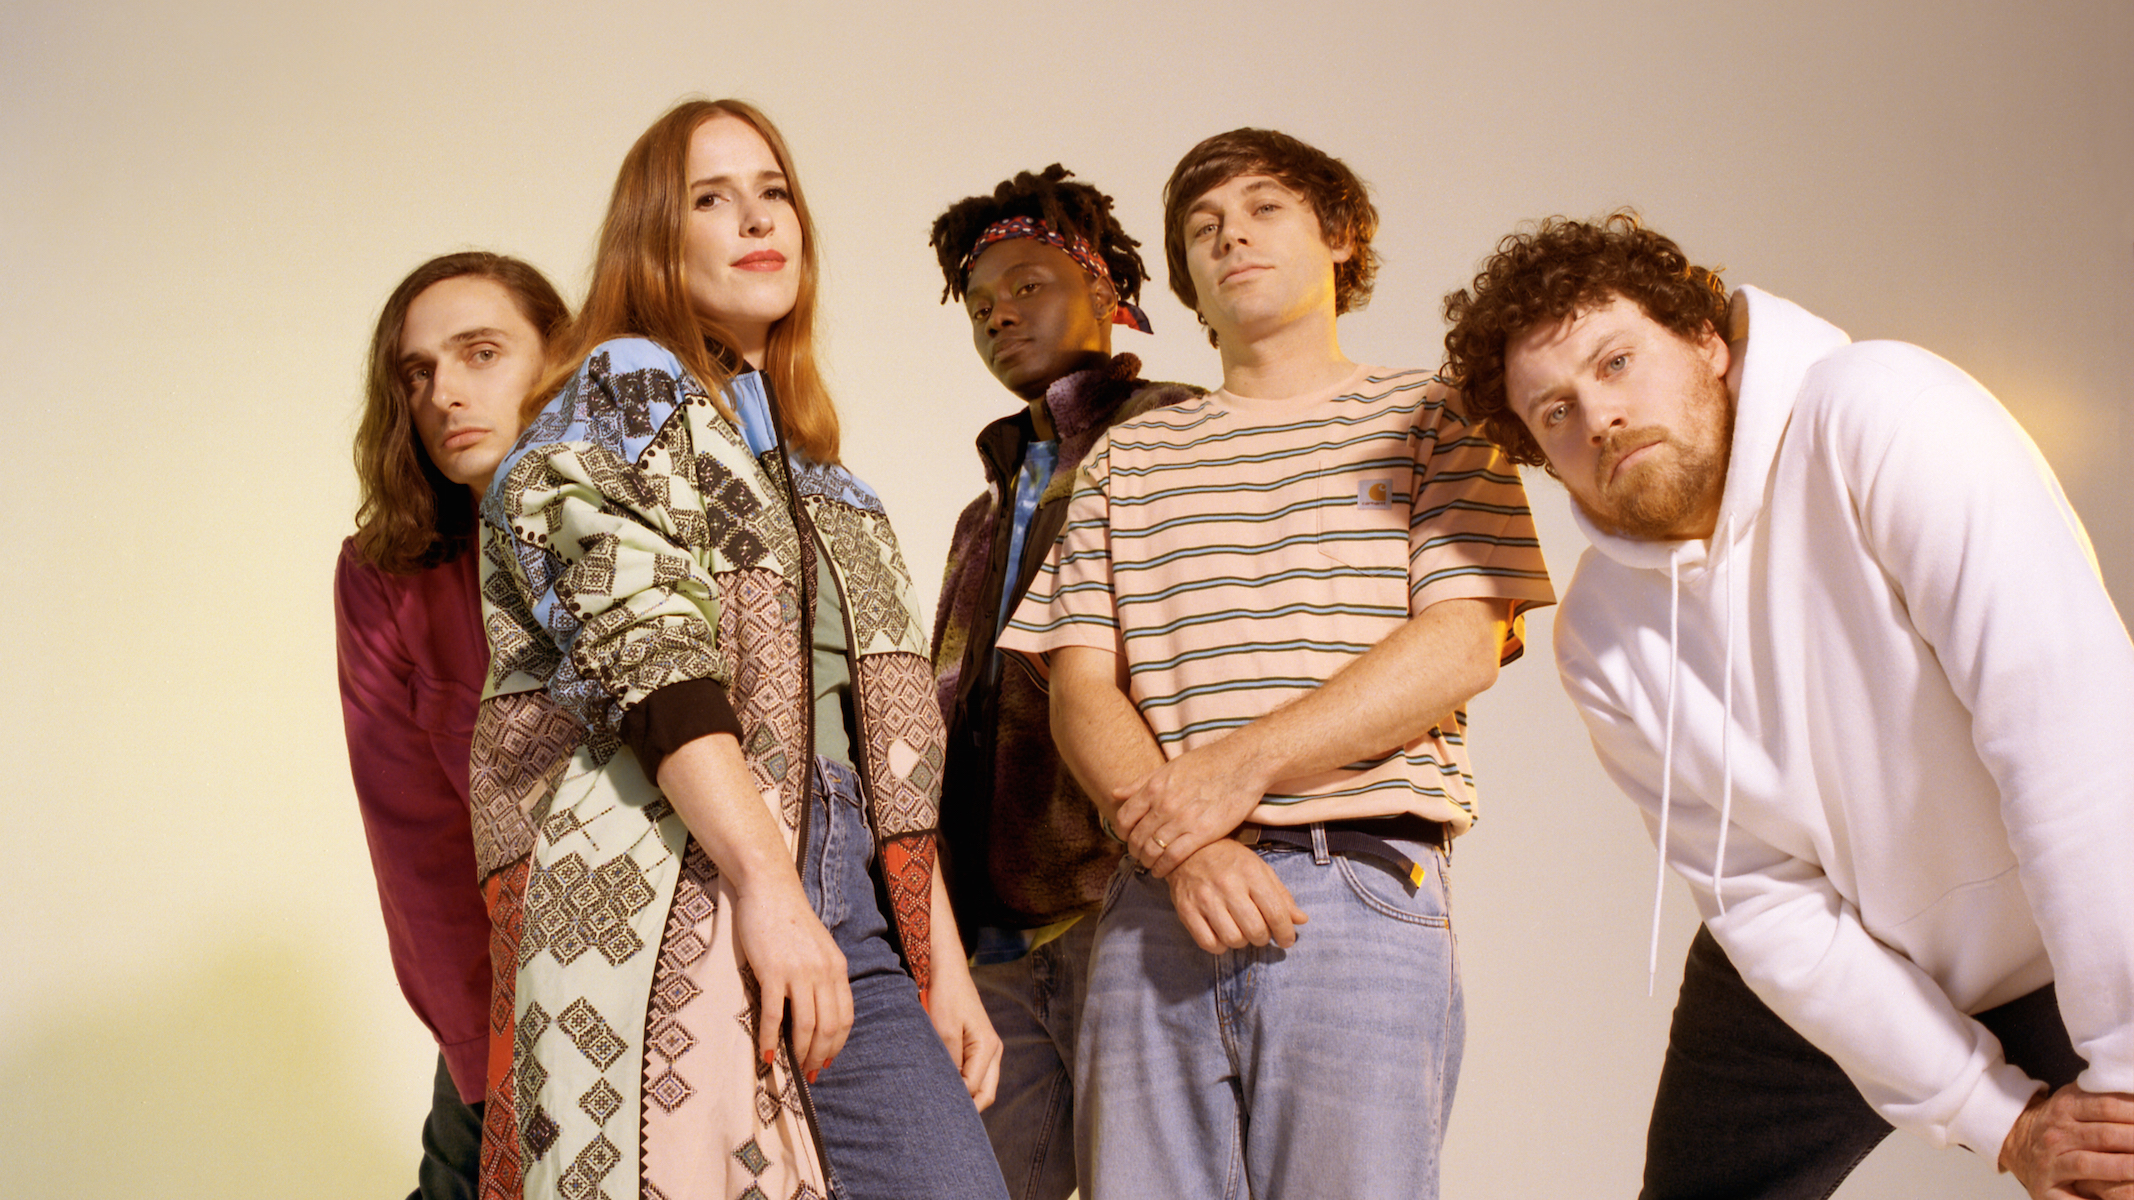 Joseph Mount is an In-Demand Songwriter and Producer, But It&#8217;s Still <i>Metronomy Forever</i>